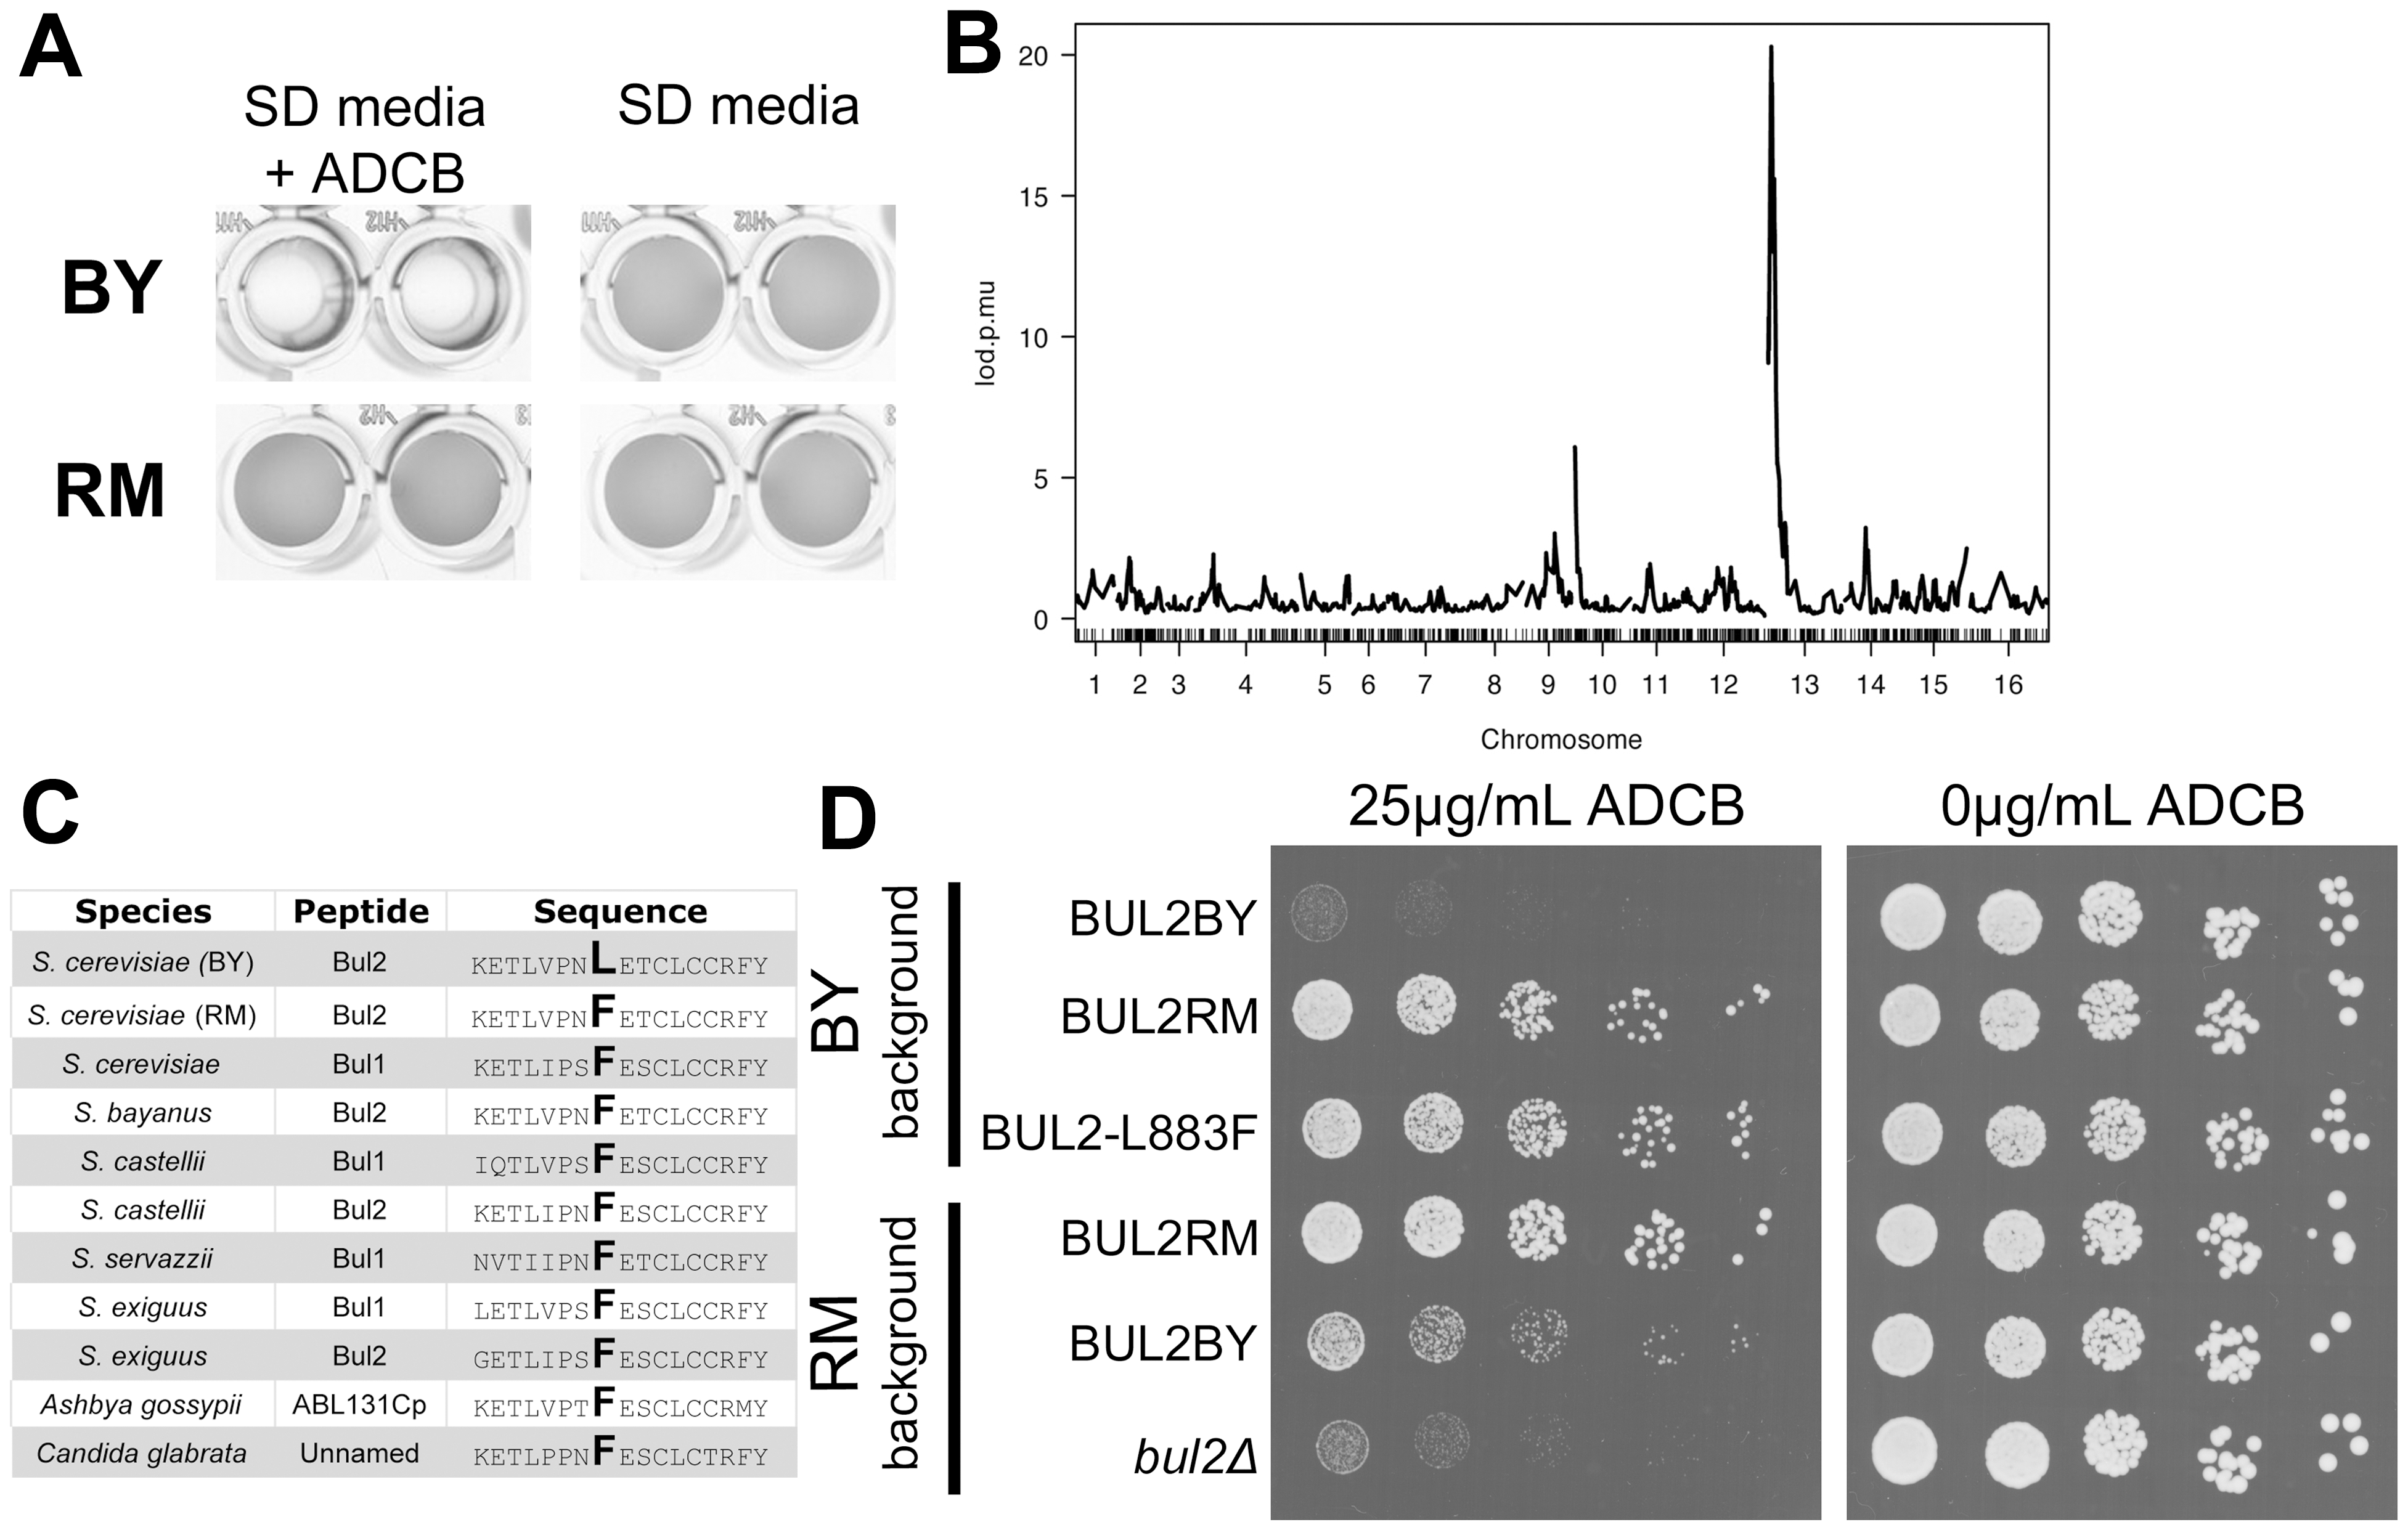 Chromosome 13 locus contains a loss of function polymorphism in BUL2.